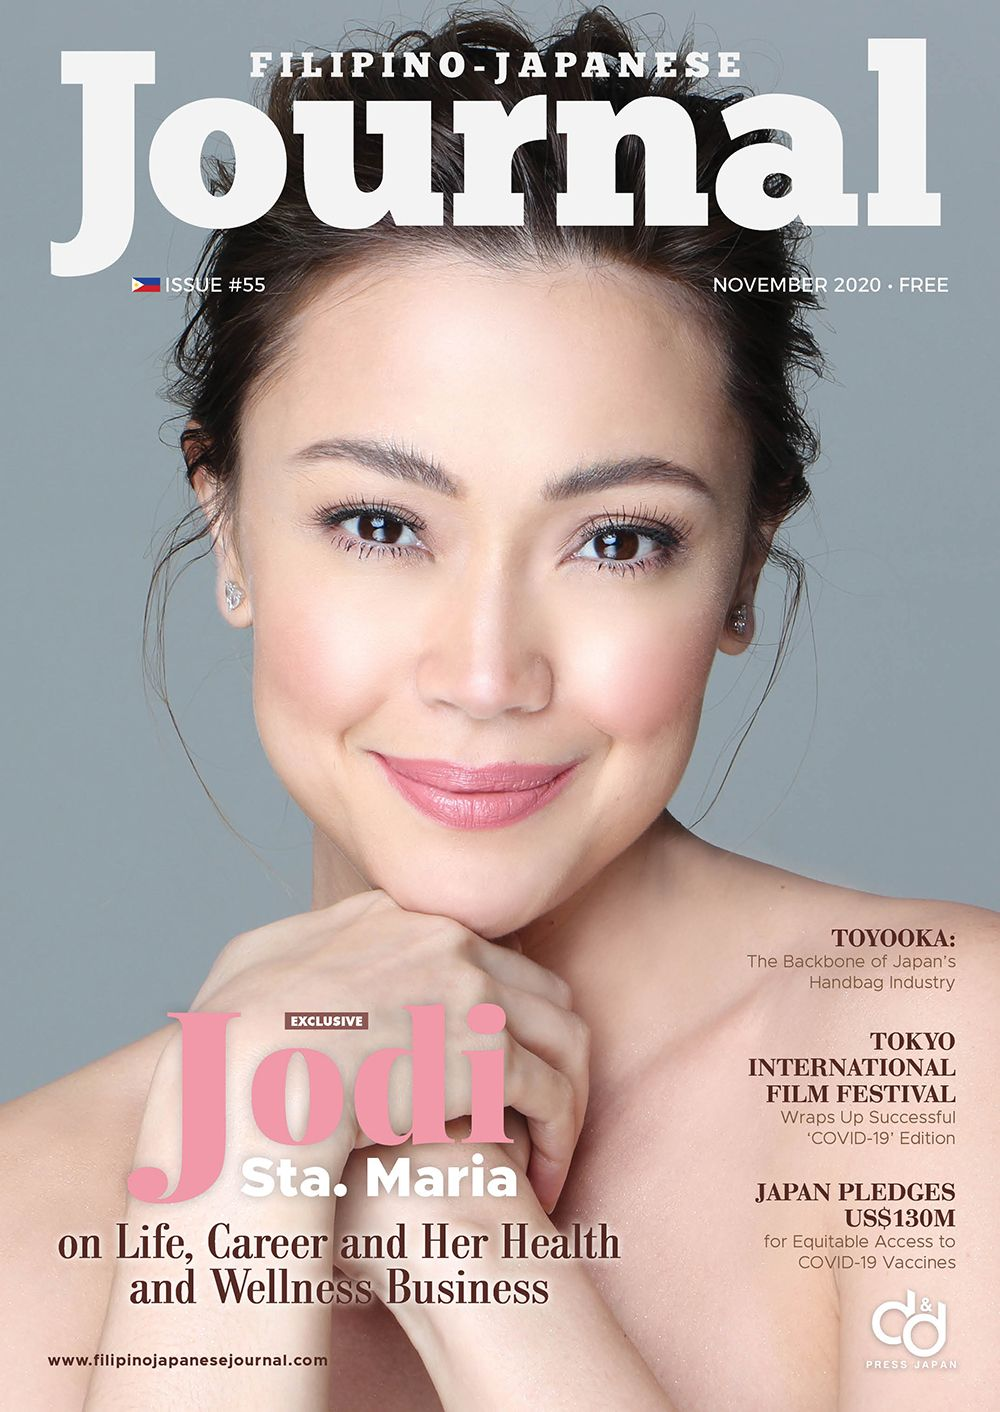 EXCLUSIVE: Jodi Sta. Maria on Life, Career and Her Health and Wellness Business